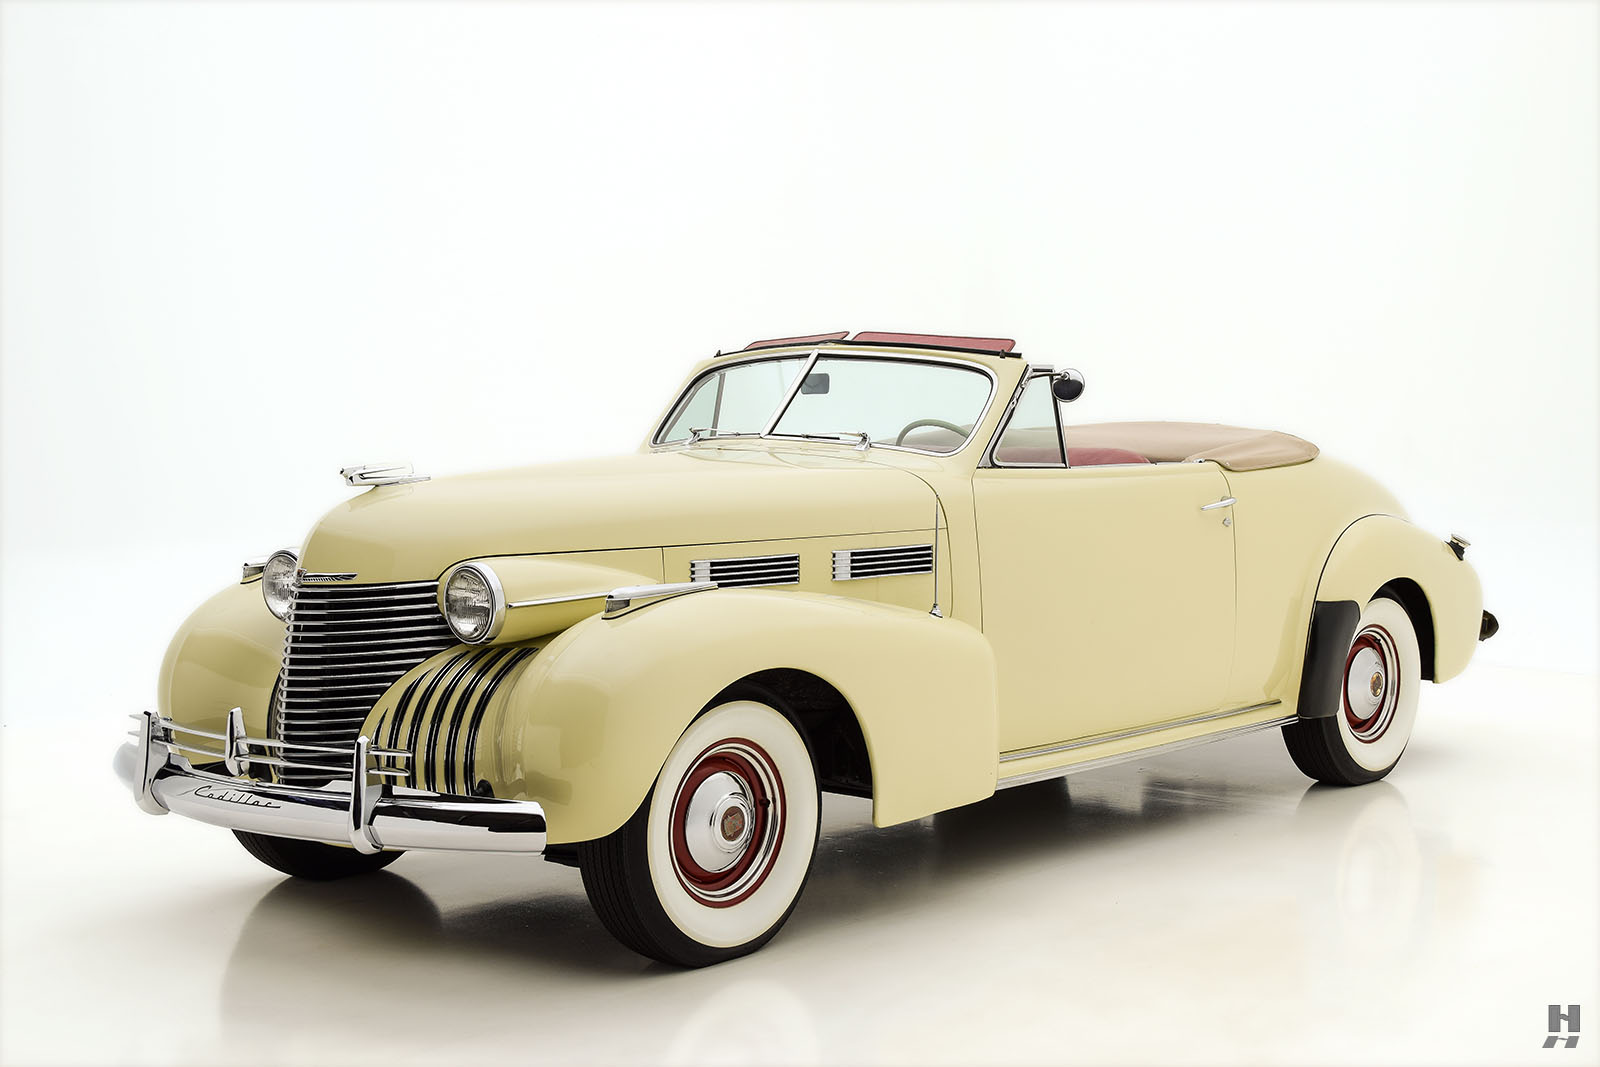 1940 Cadillac Series 62 Convertible Coupe Hyman Ltd